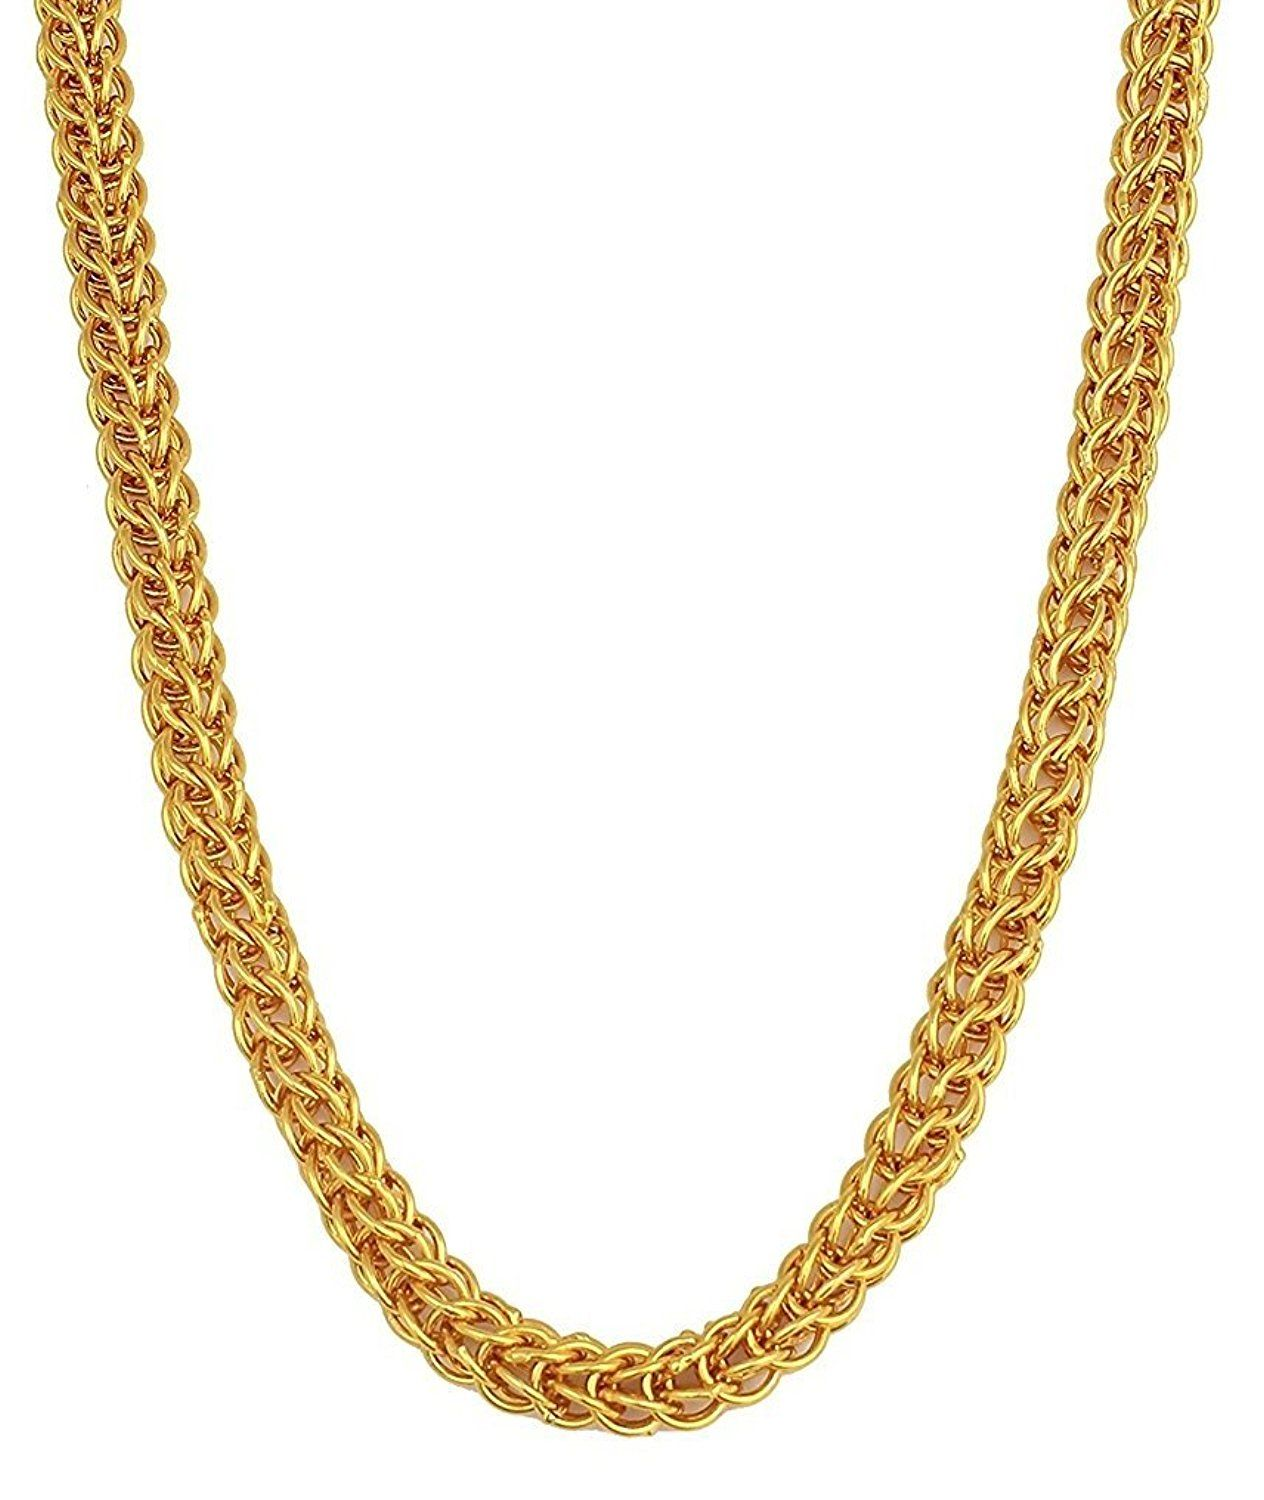 Gold Chain Designs For Mens With Weight Gold Chain Designs With Price And Weight Gold Chain Design Catal Real Gold Chains Gold Chains For Men Gold Chain Design